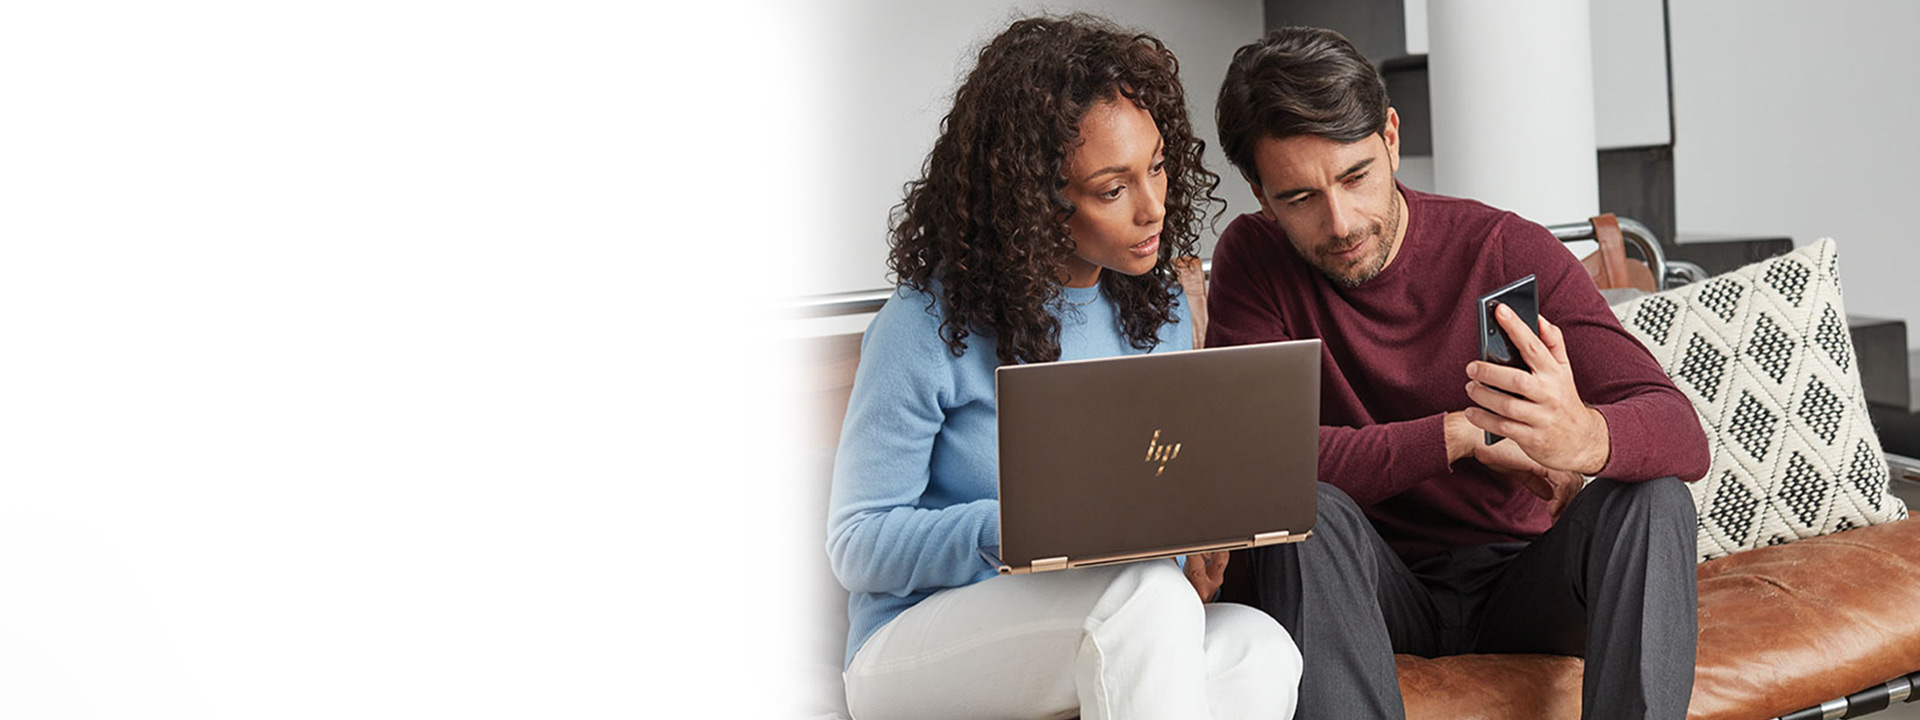 Woman and man sitting on sofa look at Windows 10 laptop and mobile device together